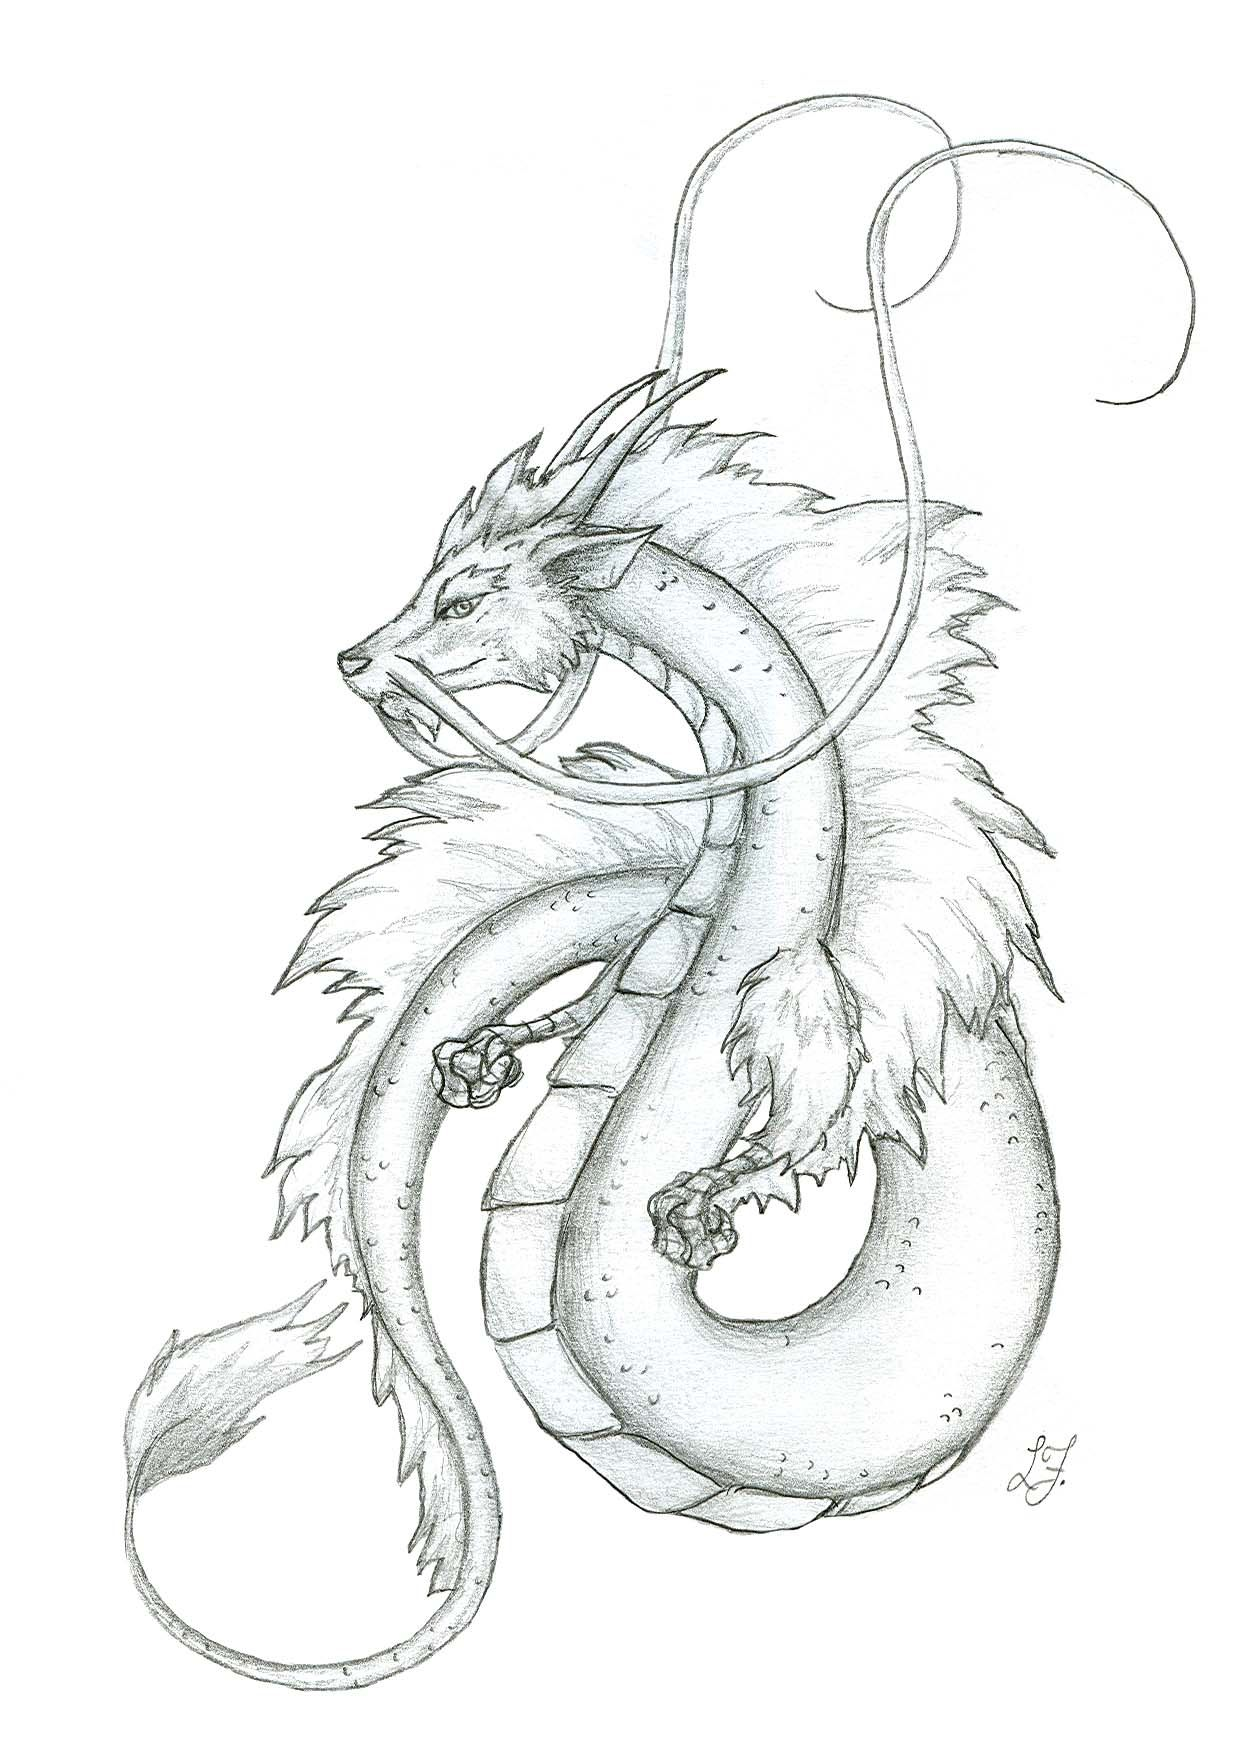 Japanese Dragon Sketches  Small Japanese Dragon By Lizzy23 Traditional Art  Drawings Fantasy 2006